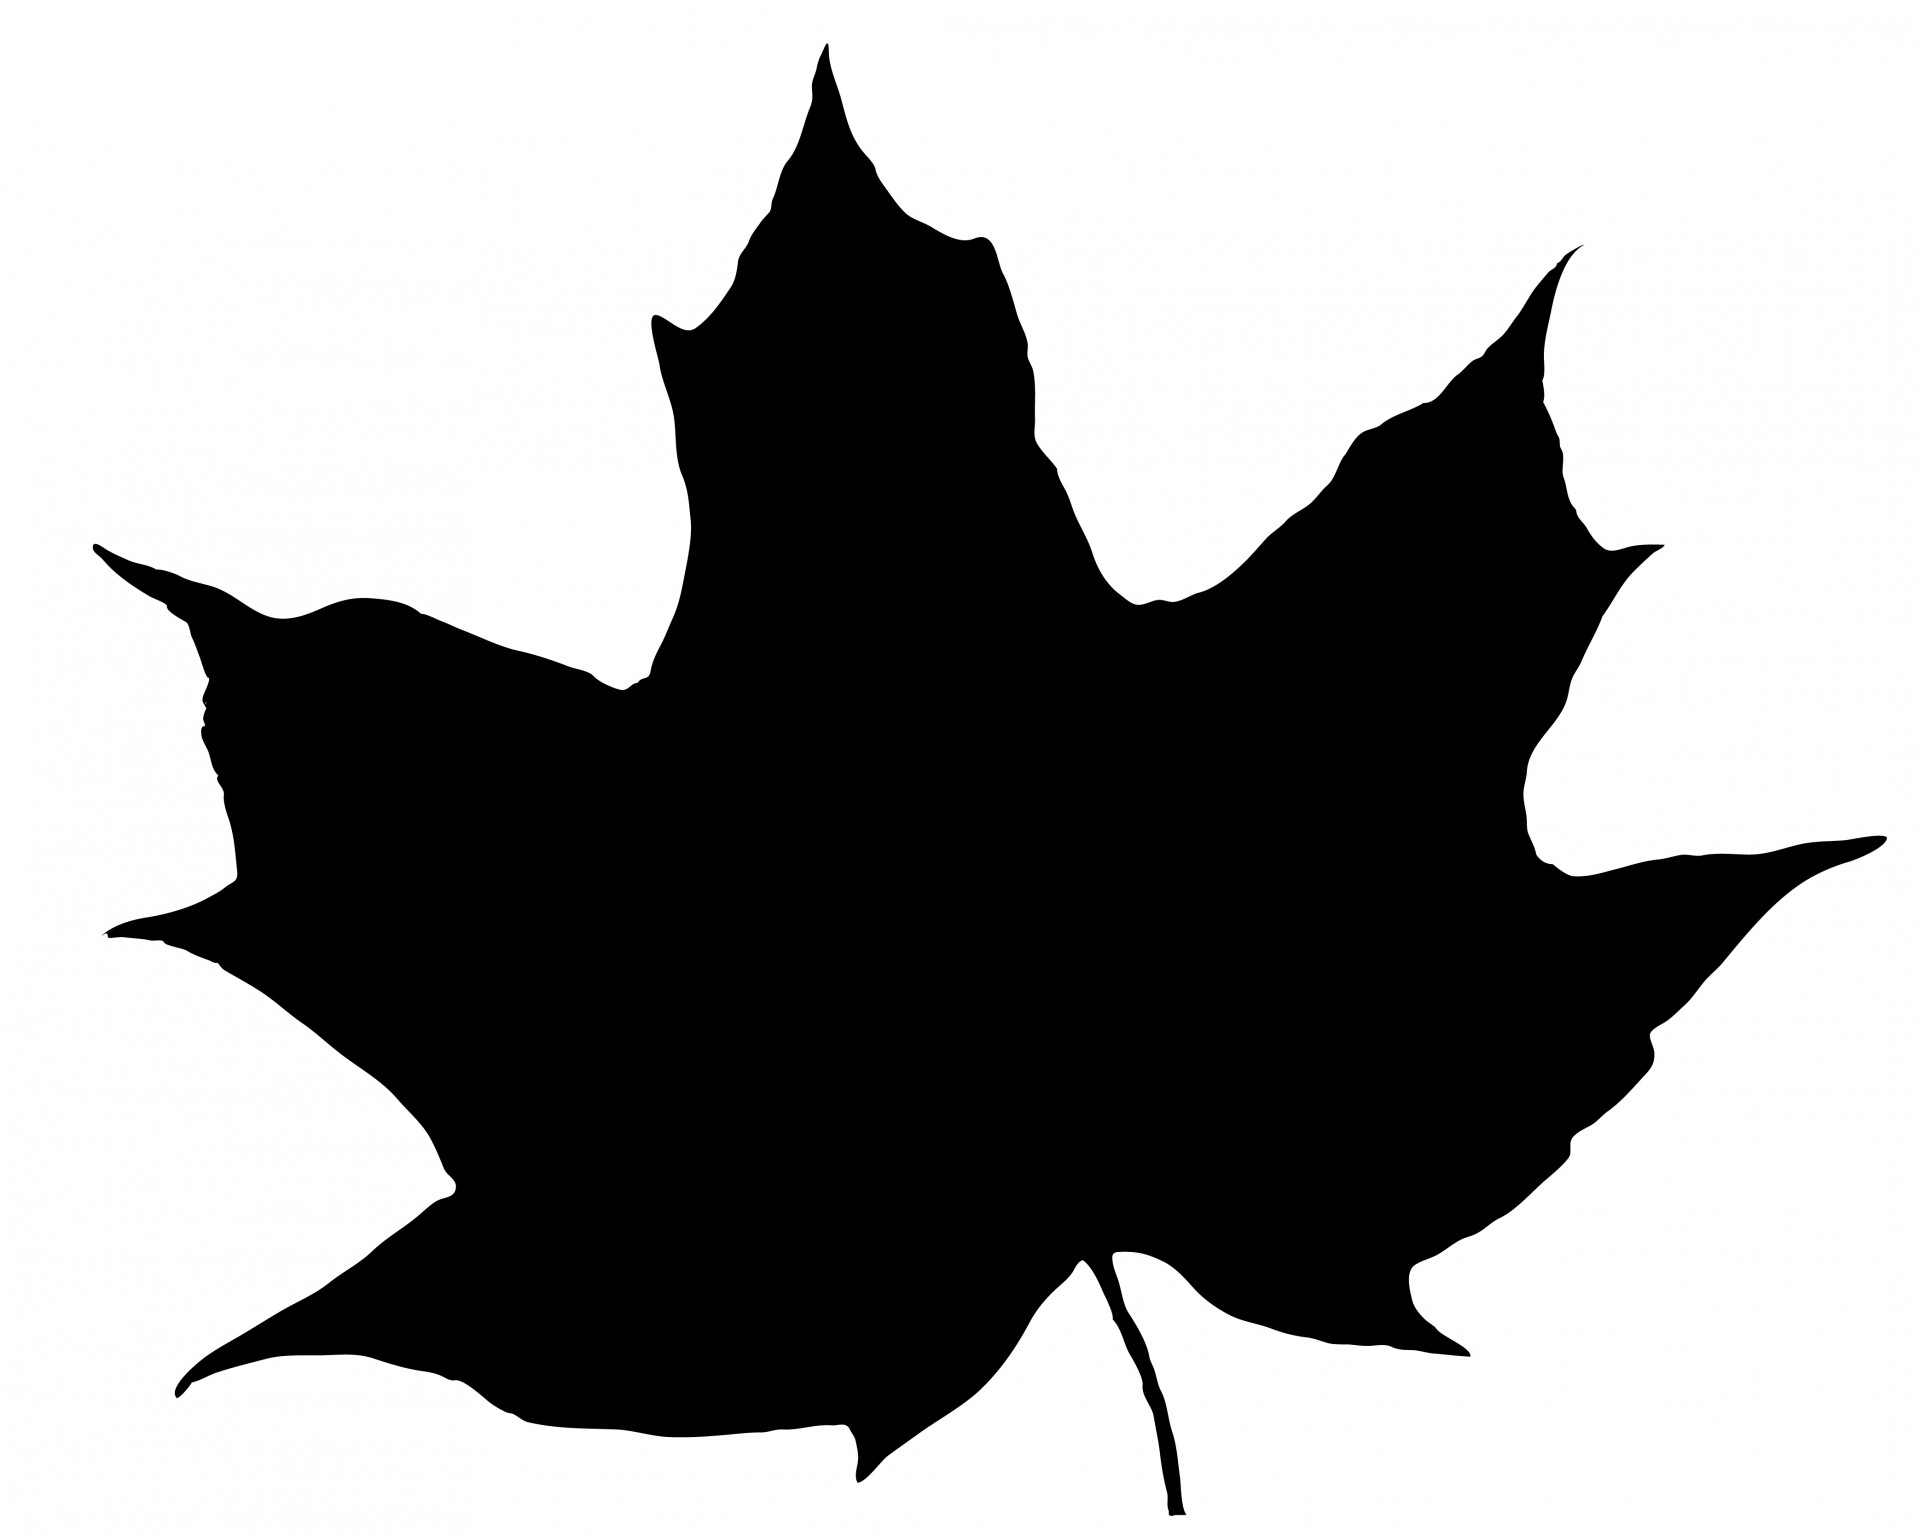 1920x1536 Leaf Silhouette Free Stock Photo